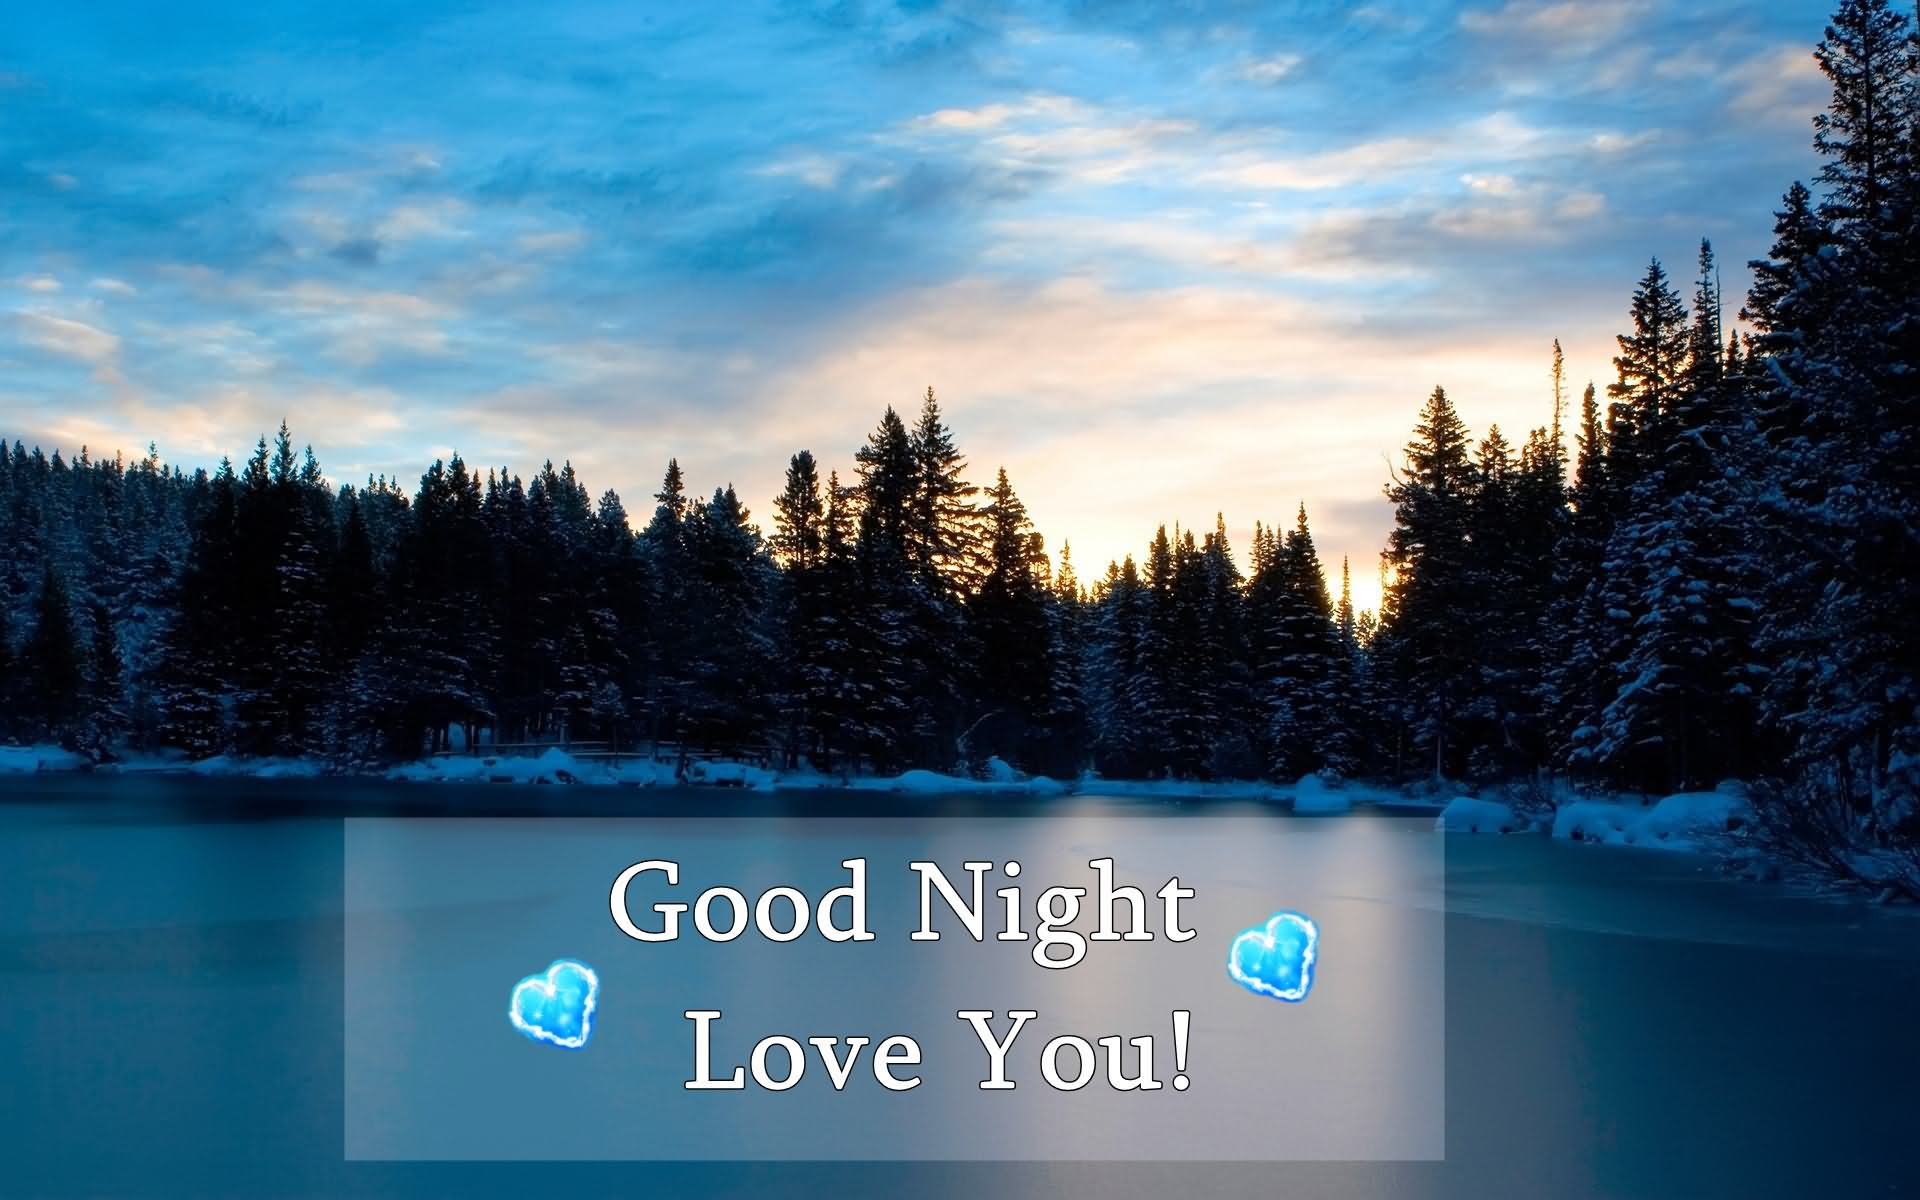 Love Wallpaper With Good Night : 15 Awesome Good Night Love Images